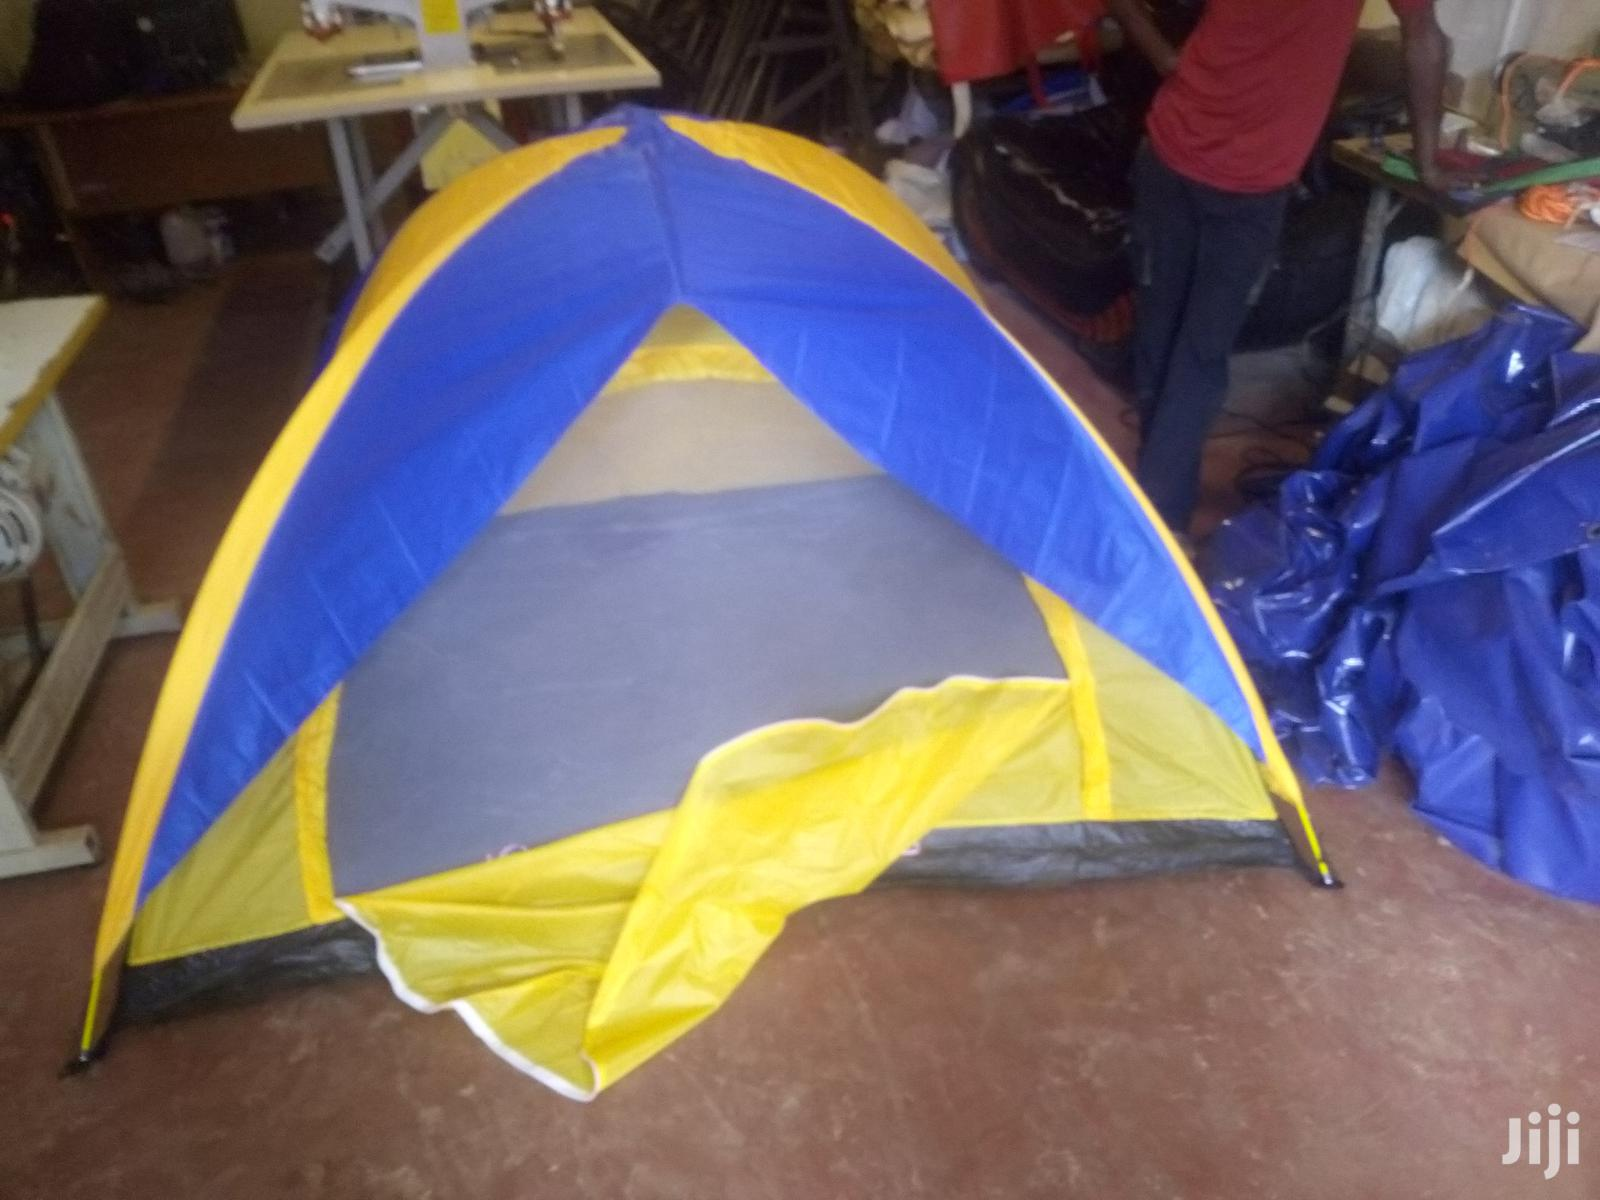 2 Sleeper Camping Tents | Camping Gear for sale in Kampala, Central Region, Uganda